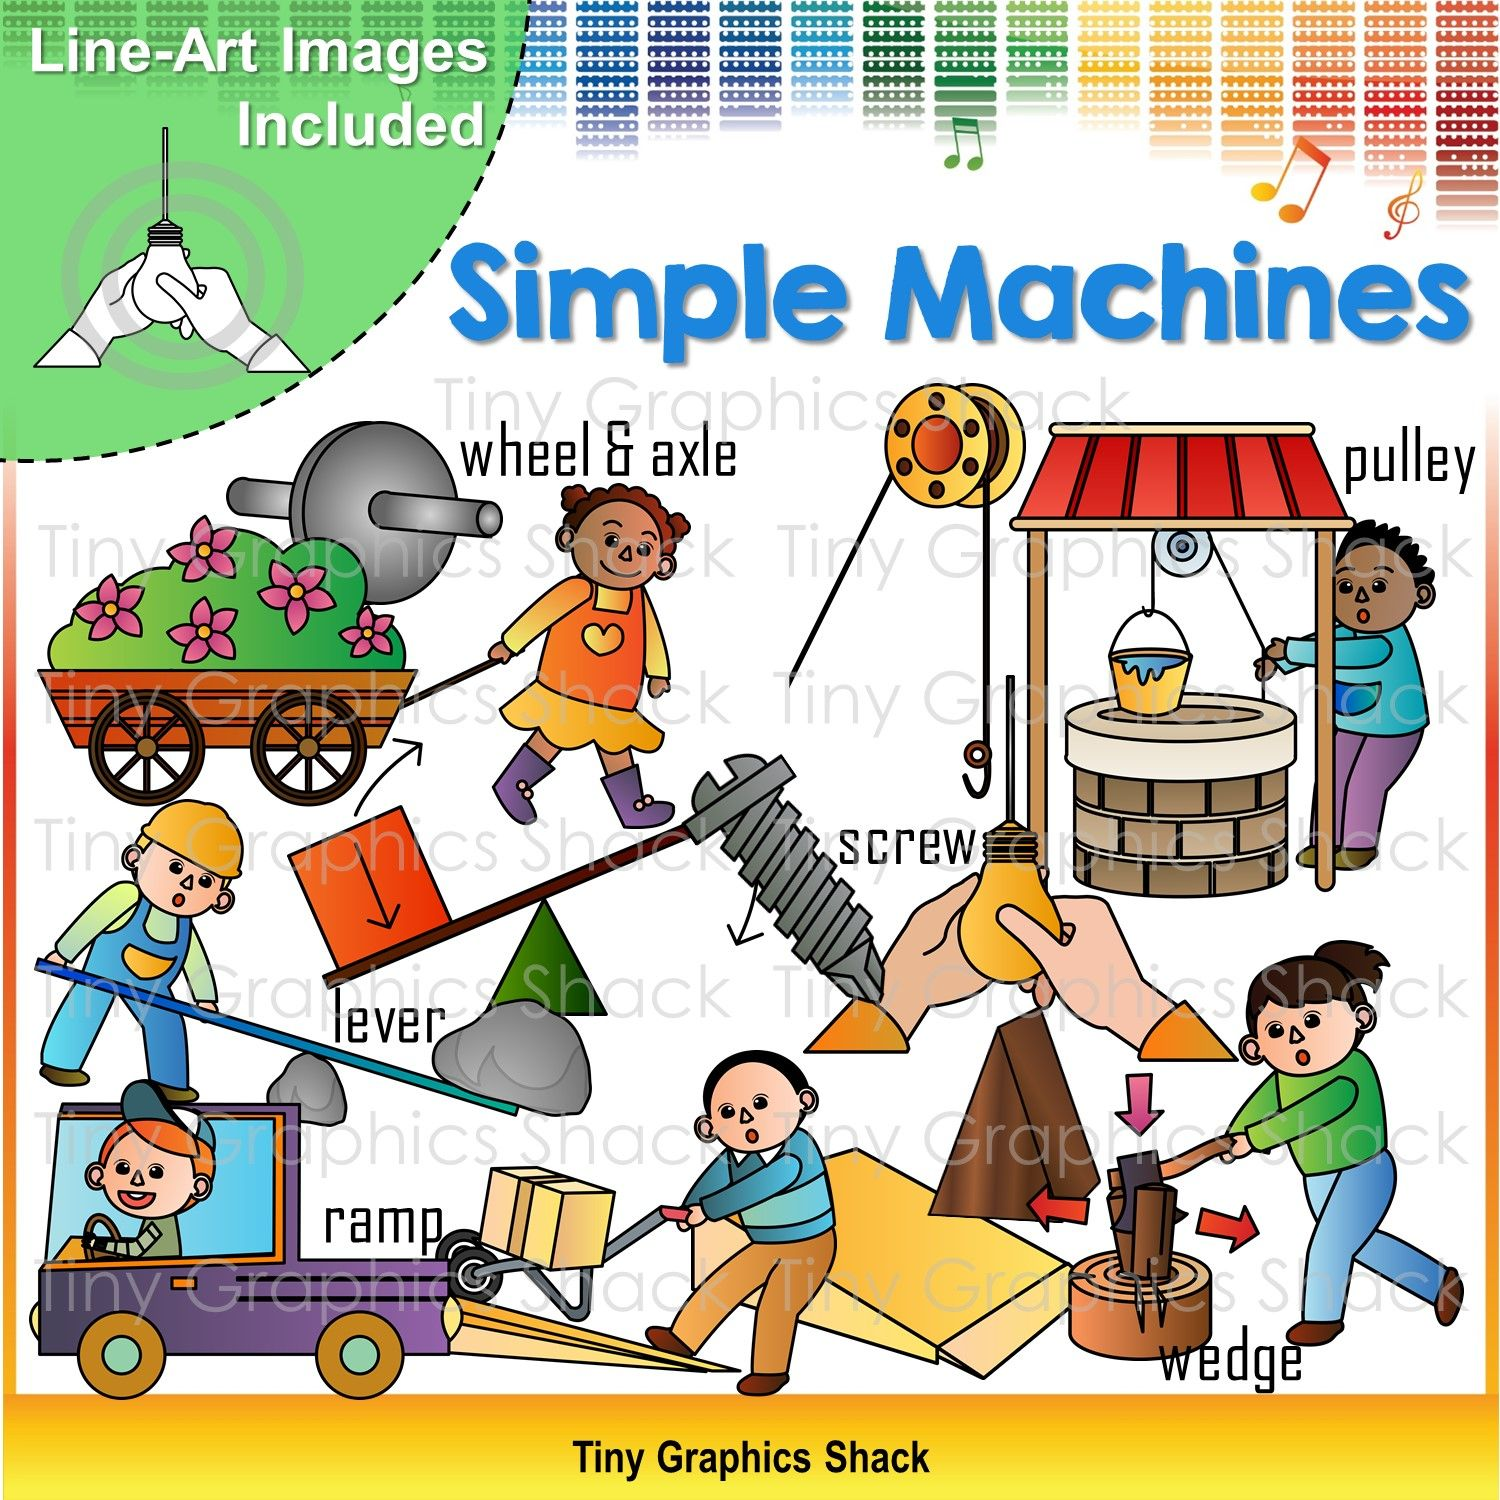 Force and Motion Simple Machines Clip Art.